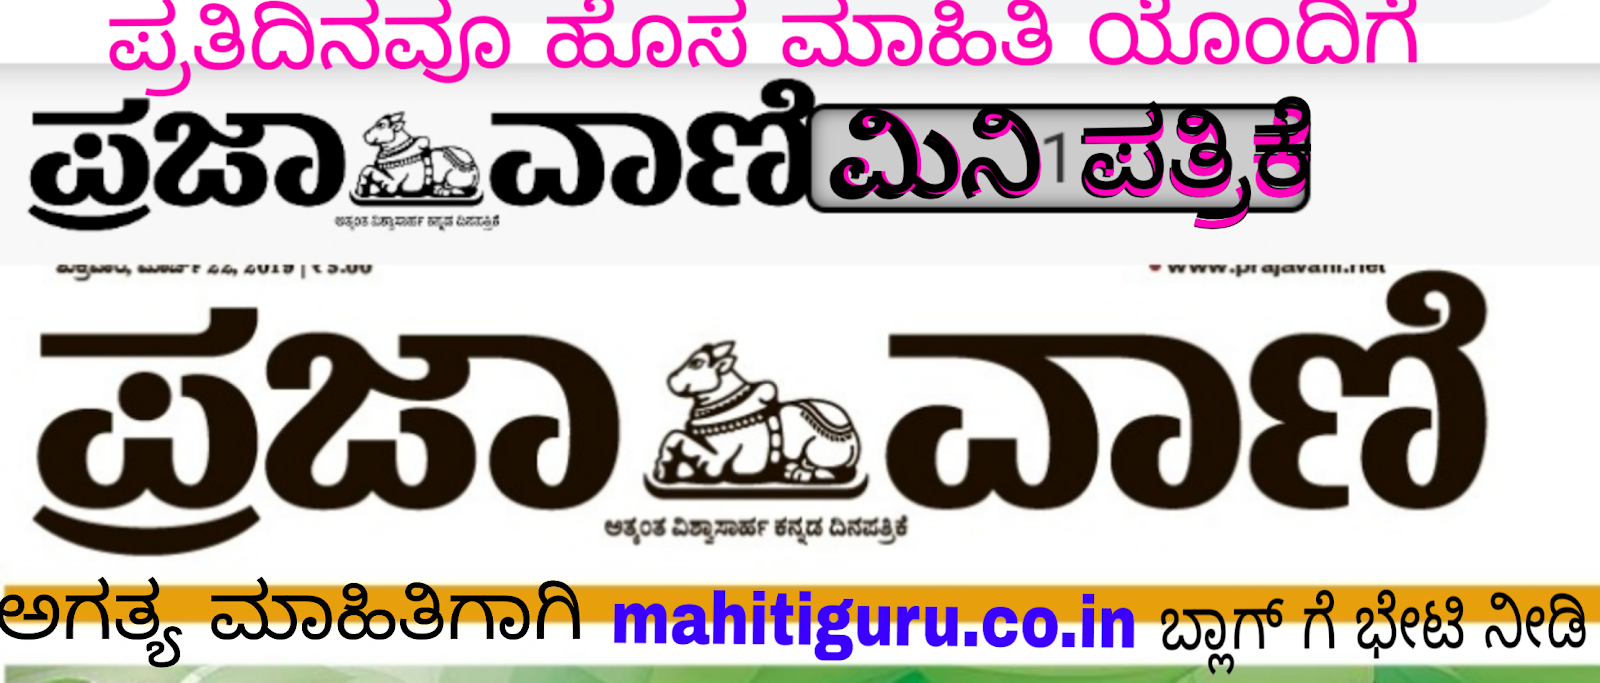 31-07-19 Today mini prajavani